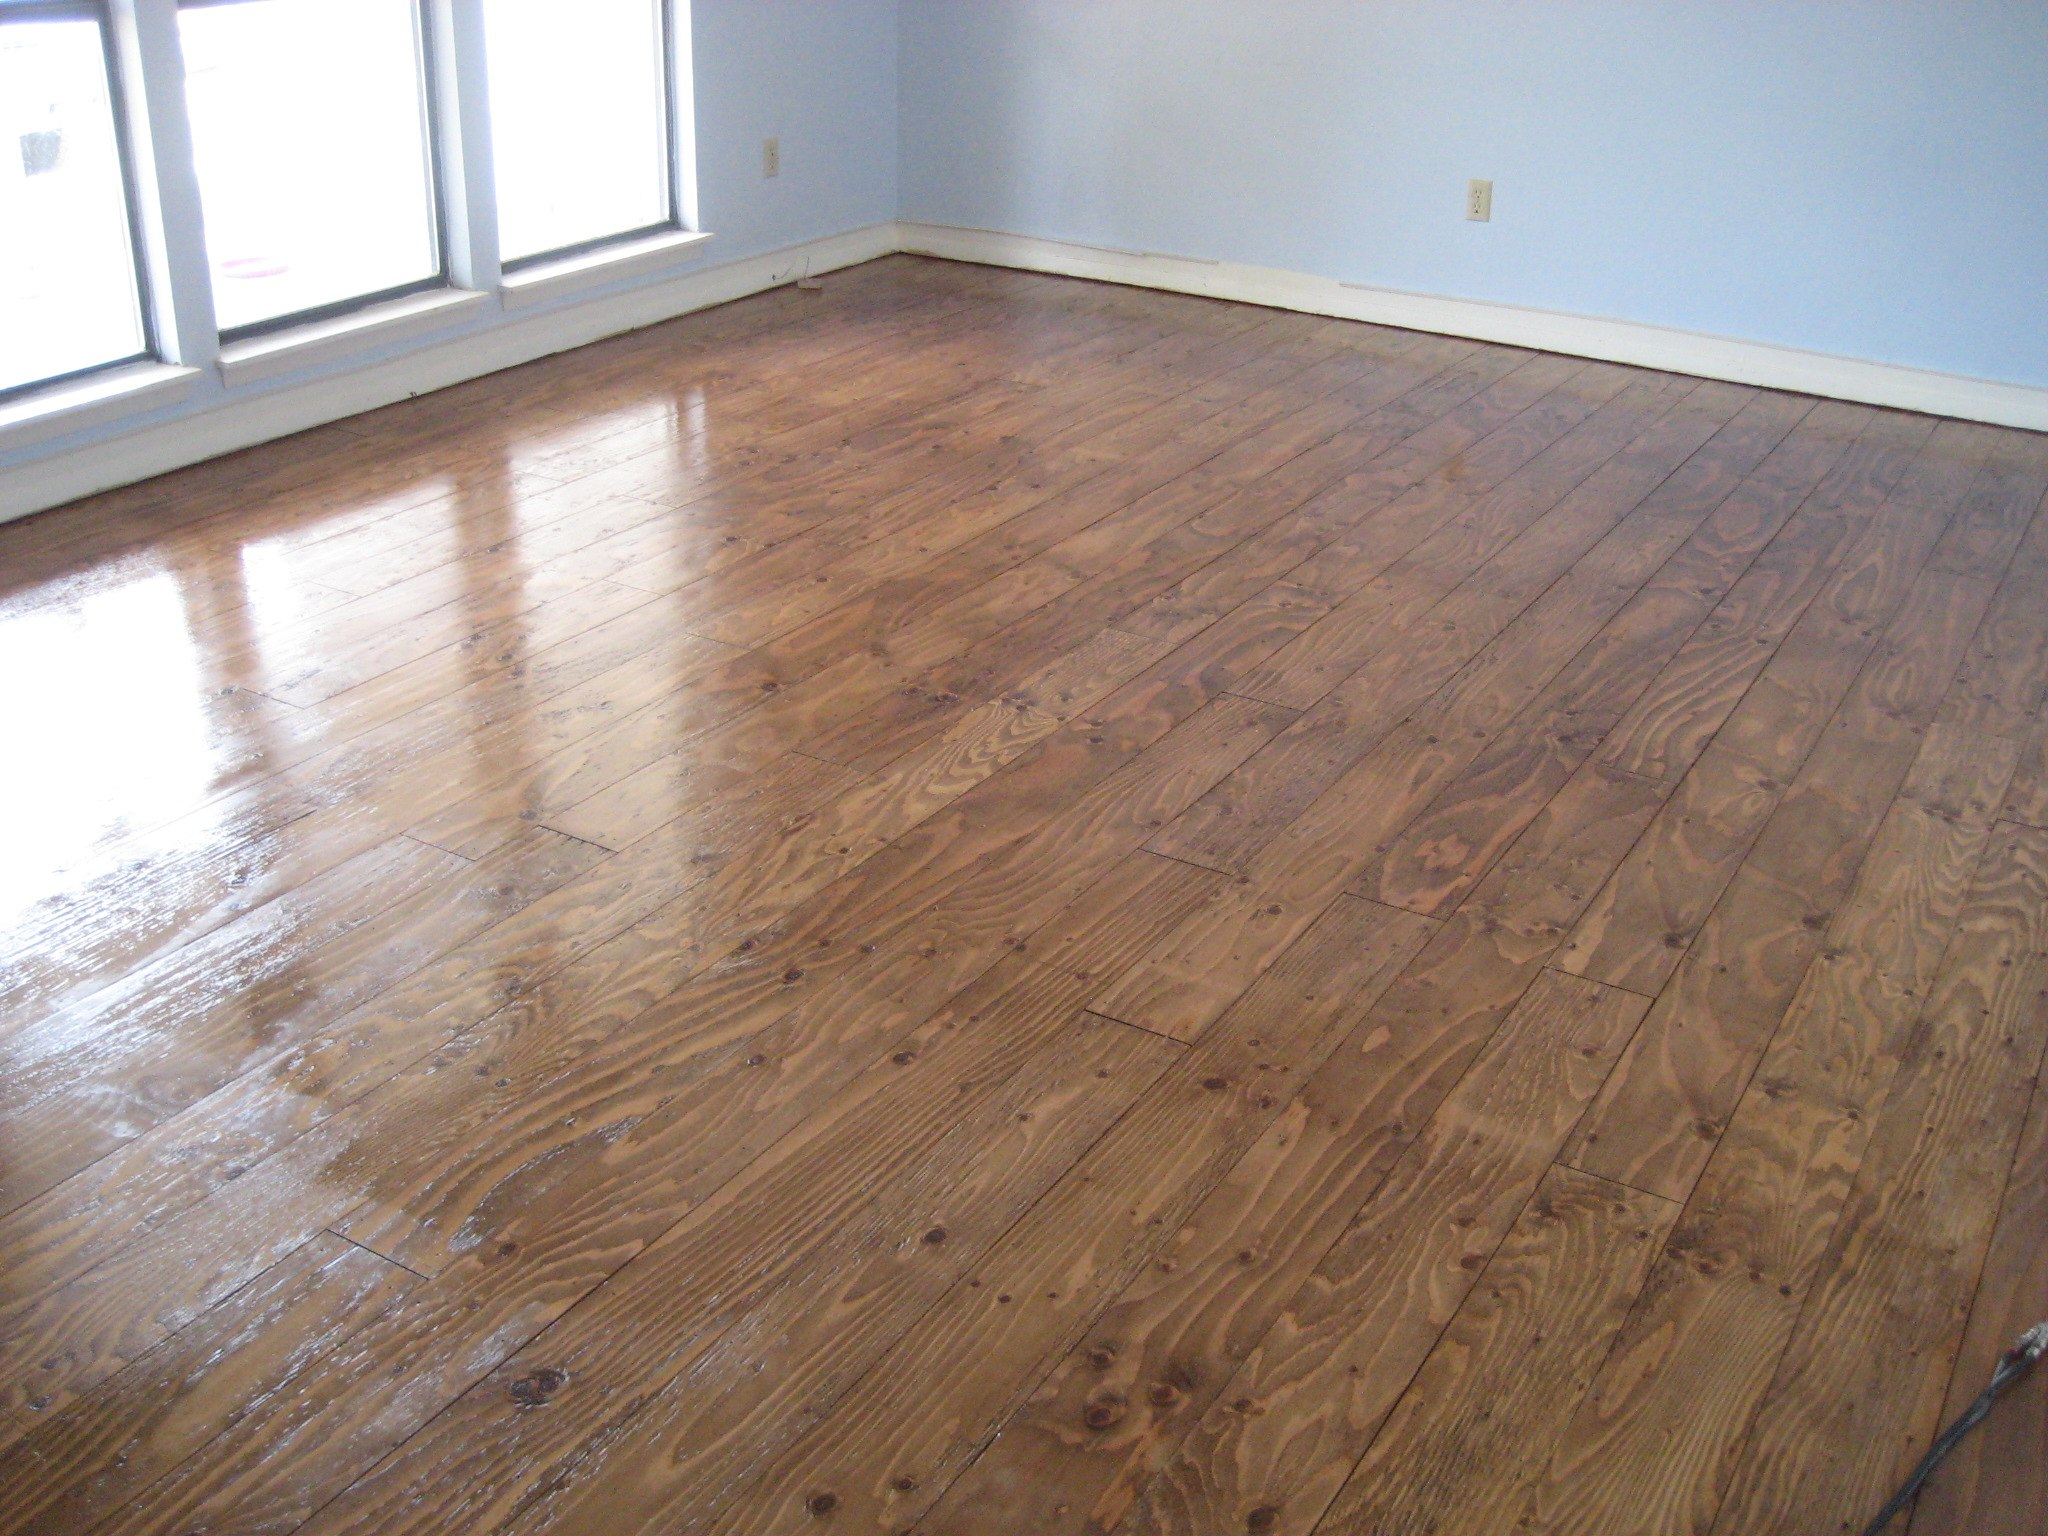 Diy cheap flooring shabby goatshabby goat posted in diy home on january 16th 2014 2 comments plywood hardwood floor solutioingenieria Images